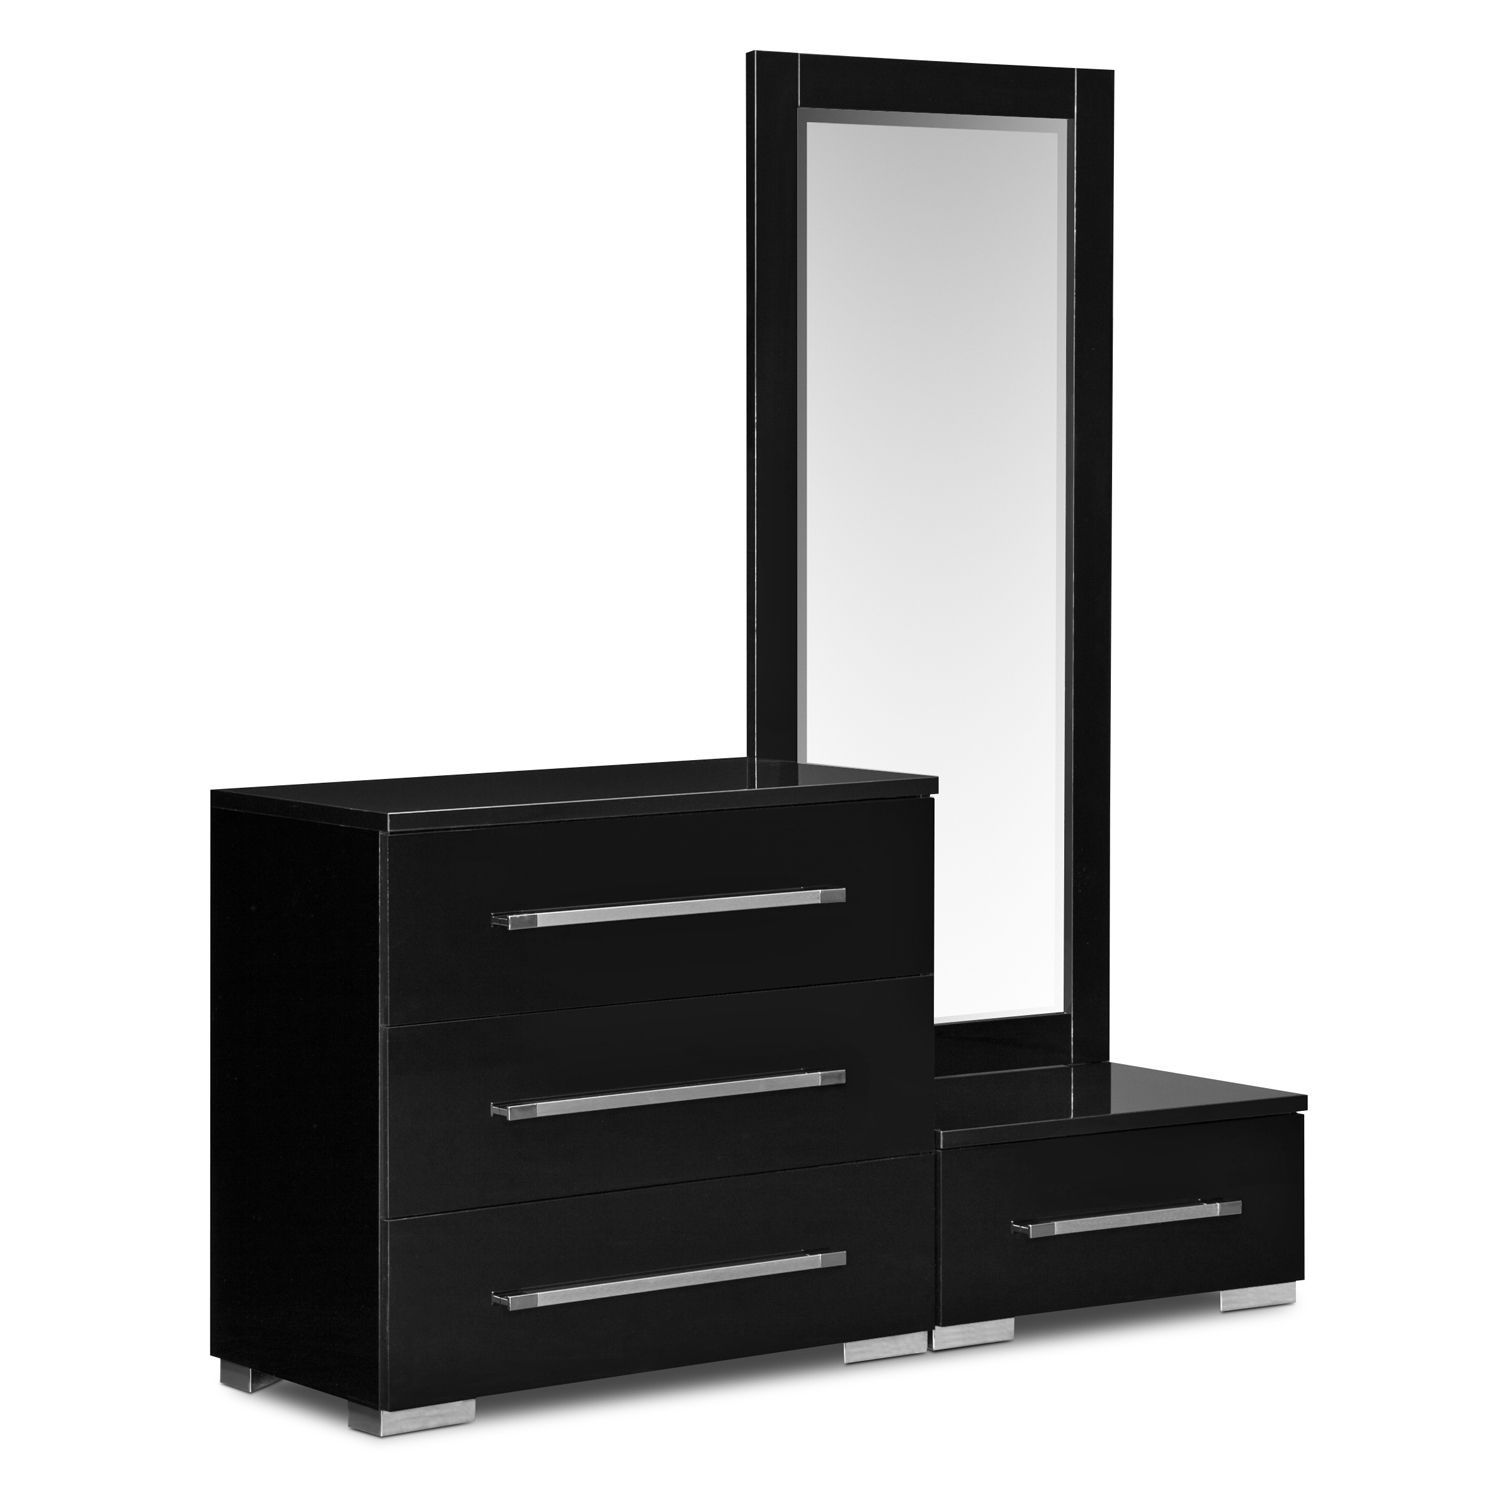 American Signature Furniture   Dimora Black Bedroom Dressing Dresser    Mirror with Step. Dimora Black Dressing Dresser   Mirror With Graceful Design